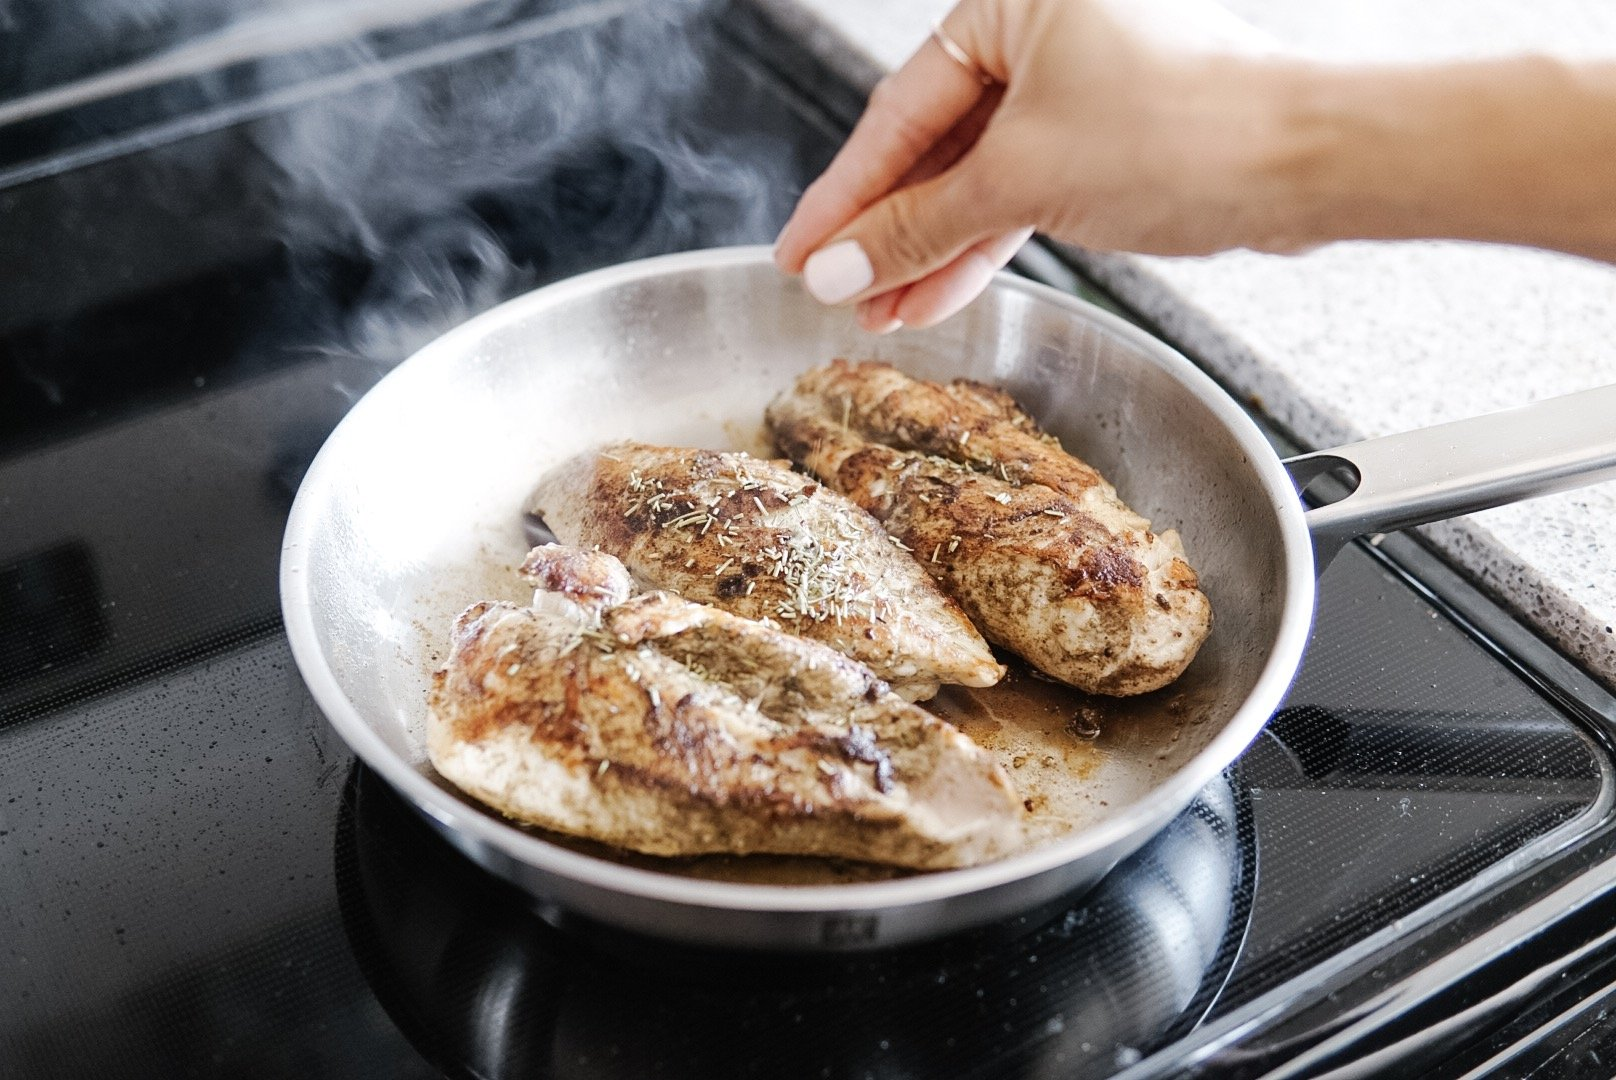 """glazed balsamic chicken in the joy cookware 9"""" fry pan on a stove top"""